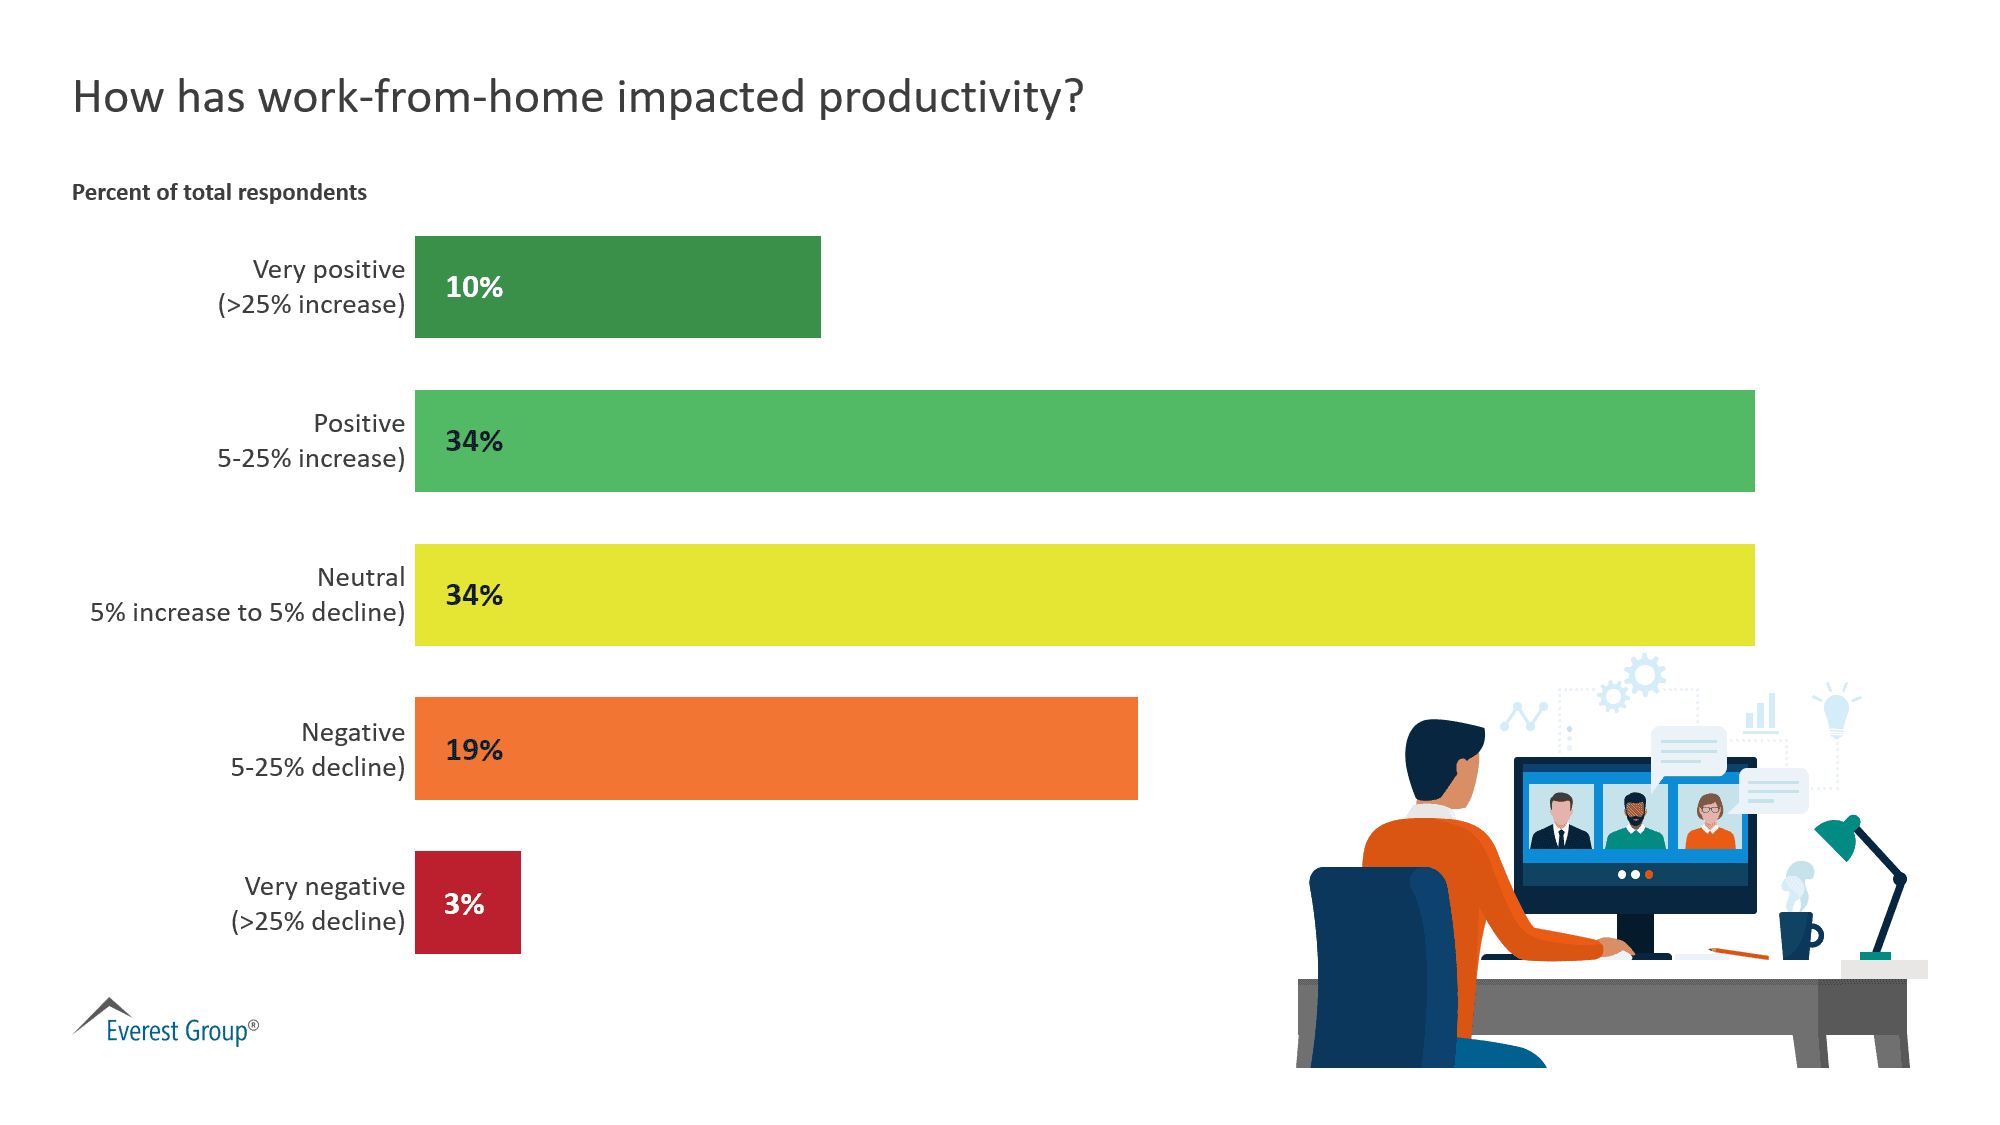 How has work-from-home impacted productivity